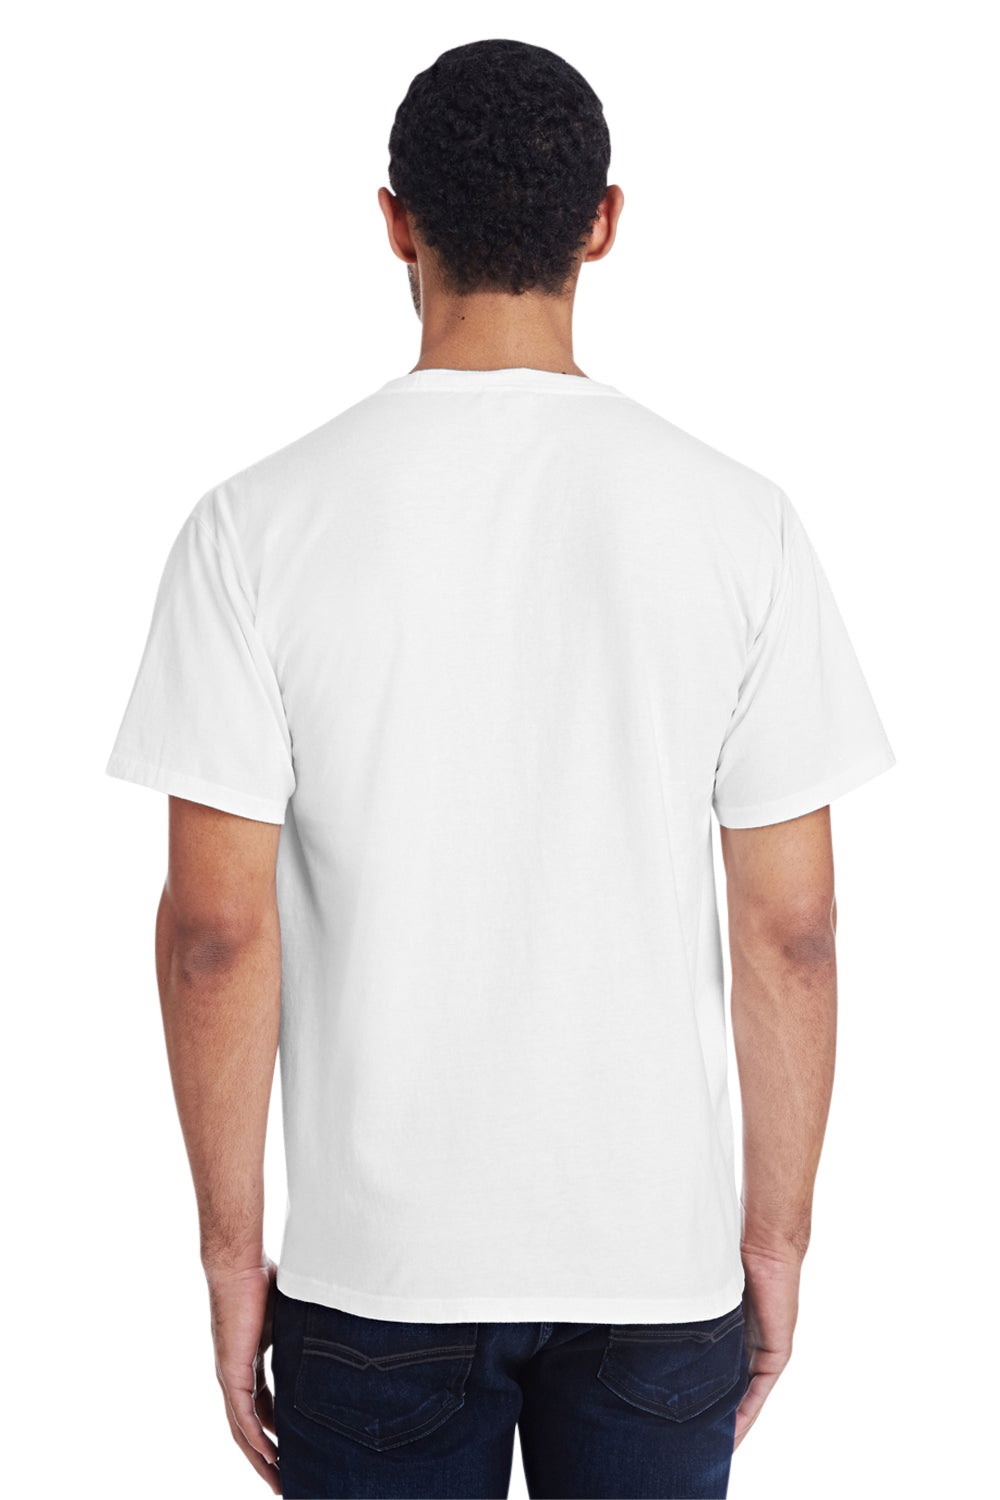 ComfortWash By Hanes GDH150 Mens Short Sleeve Crewneck T-Shirt w/ Pocket White Back